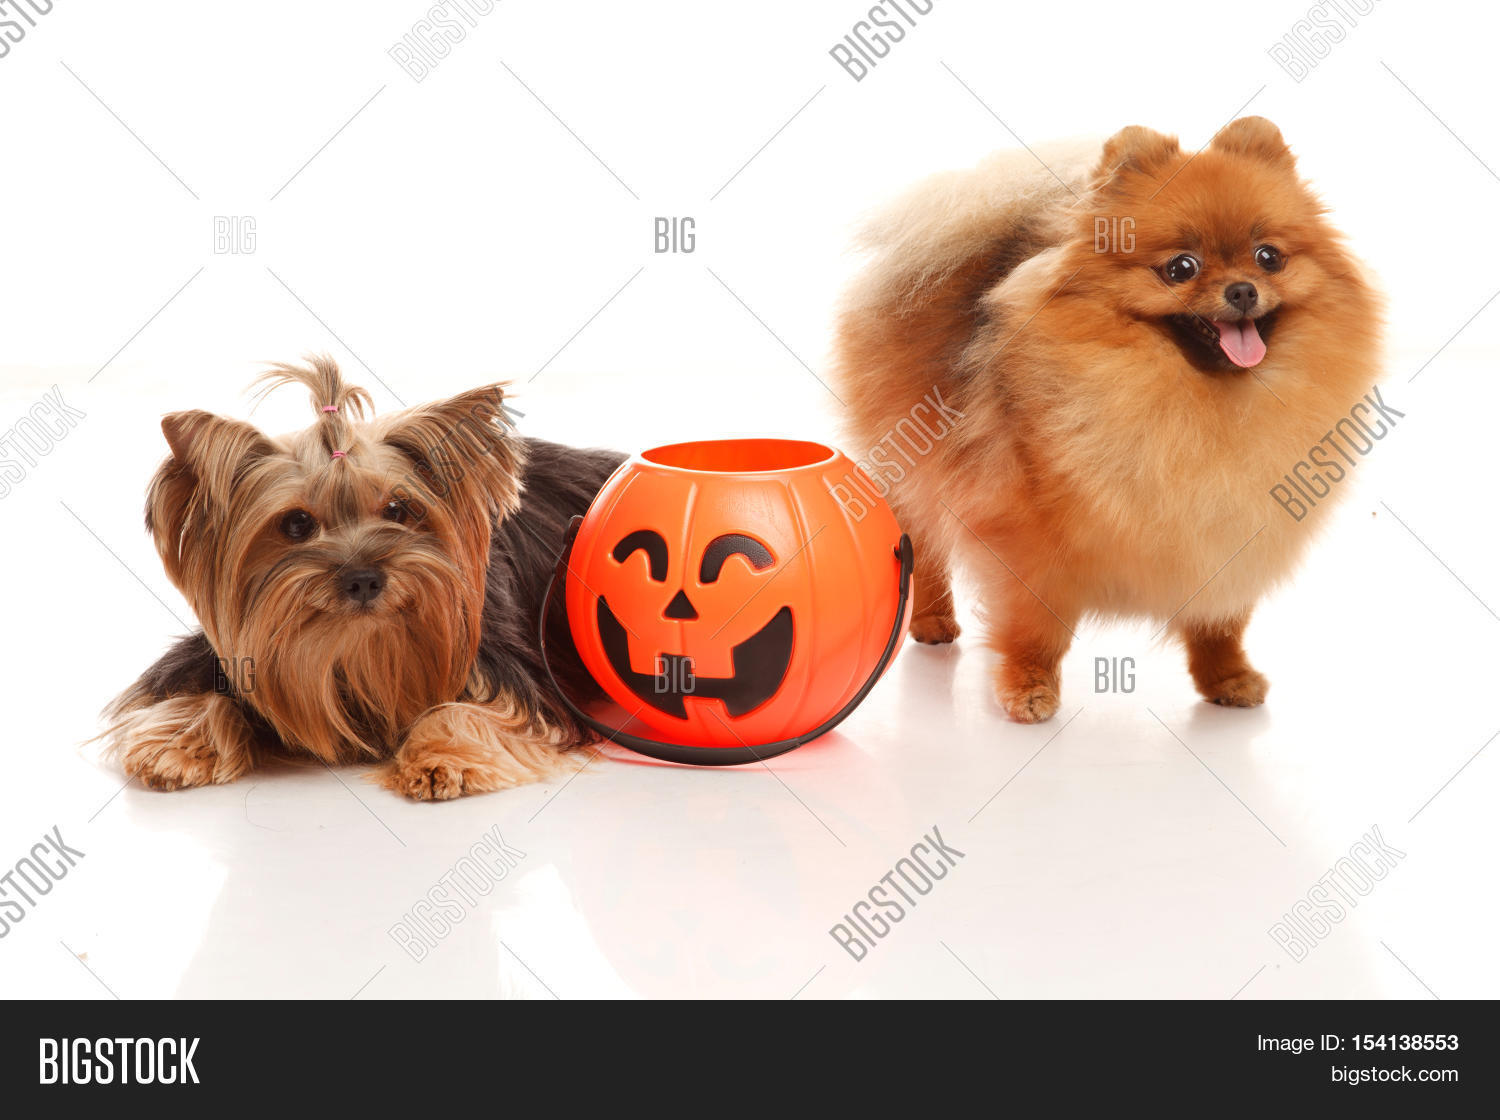 two sweet dog - image & photo (free trial) | bigstock